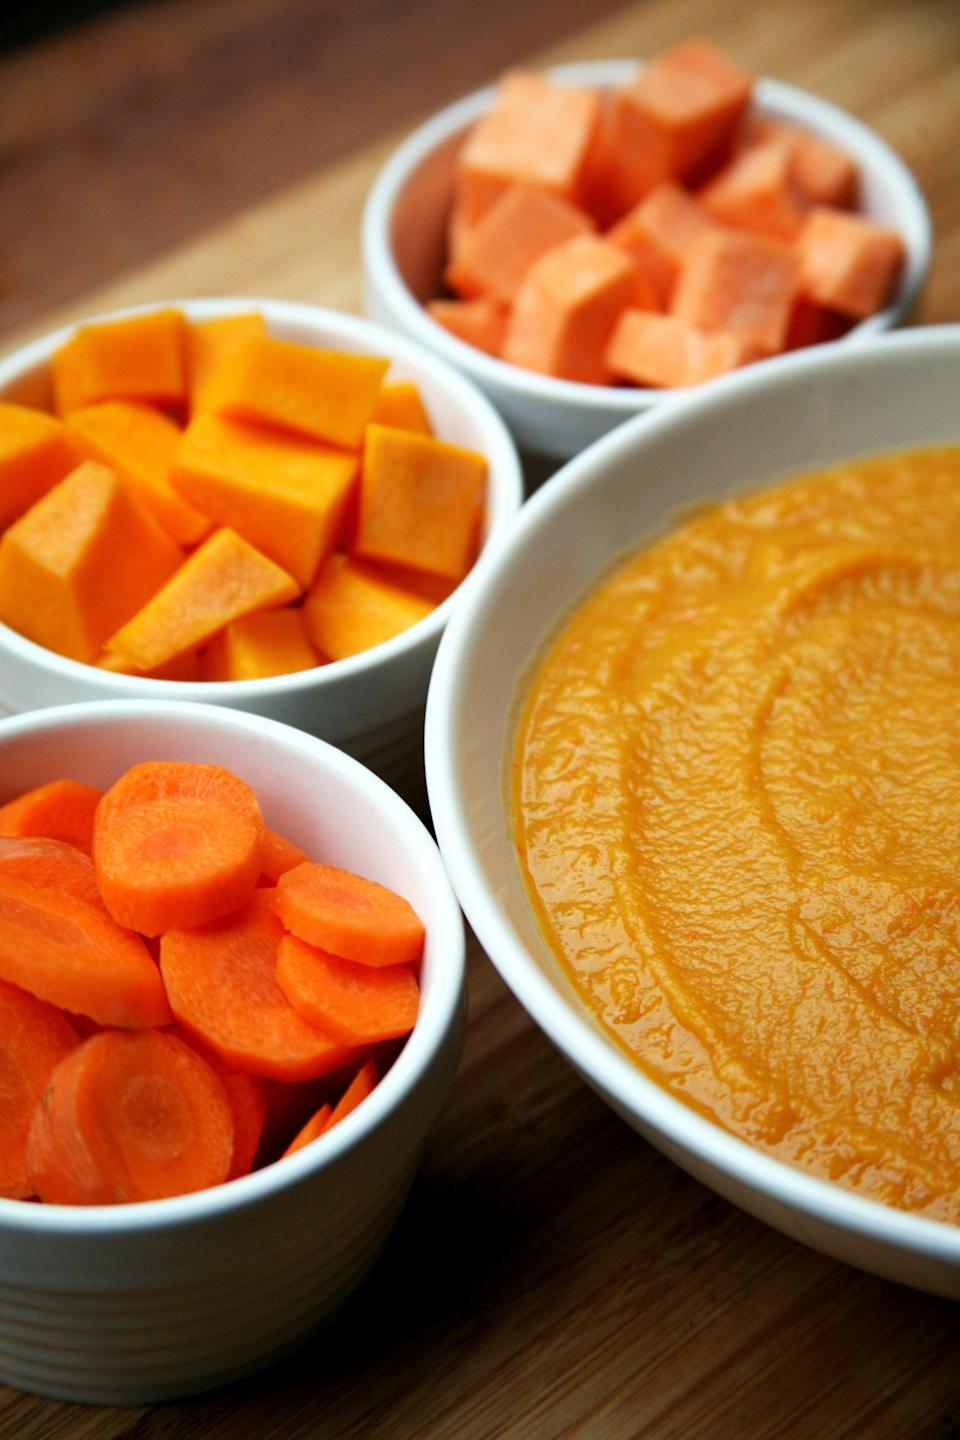 "<p>Kidney, pinto, back, and cannellini beans offer easy plant-based protein and fiber, which we all could use more of. Add them to <a href=""https://www.popsugar.com/fitness/Squash-Sweet-Potato-Carrot-White-Bean-Soup-36020648"" class=""link rapid-noclick-resp"" rel=""nofollow noopener"" target=""_blank"" data-ylk=""slk:pureed soups"">pureed soups</a>, fruit smoothies, and even <a href=""https://www.popsugar.com/fitness/Banana-Cashew-Overnight-Oats-40463726"" class=""link rapid-noclick-resp"" rel=""nofollow noopener"" target=""_blank"" data-ylk=""slk:overnight oats"">overnight oats</a> to fill you up longer.</p>"